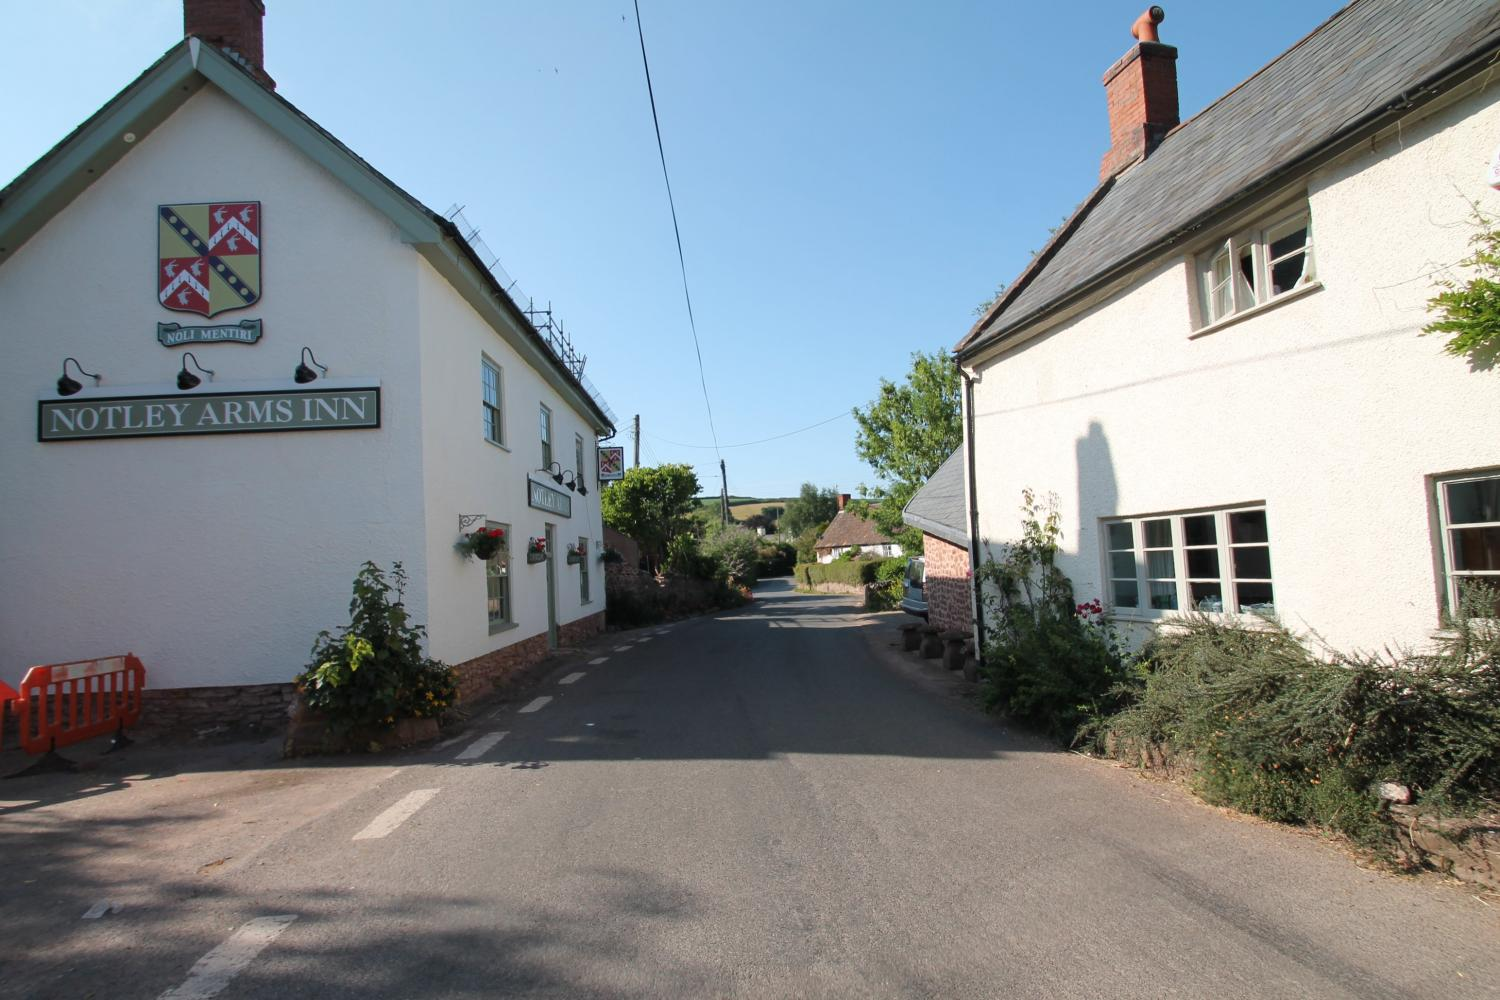 Monksilver village and local pub